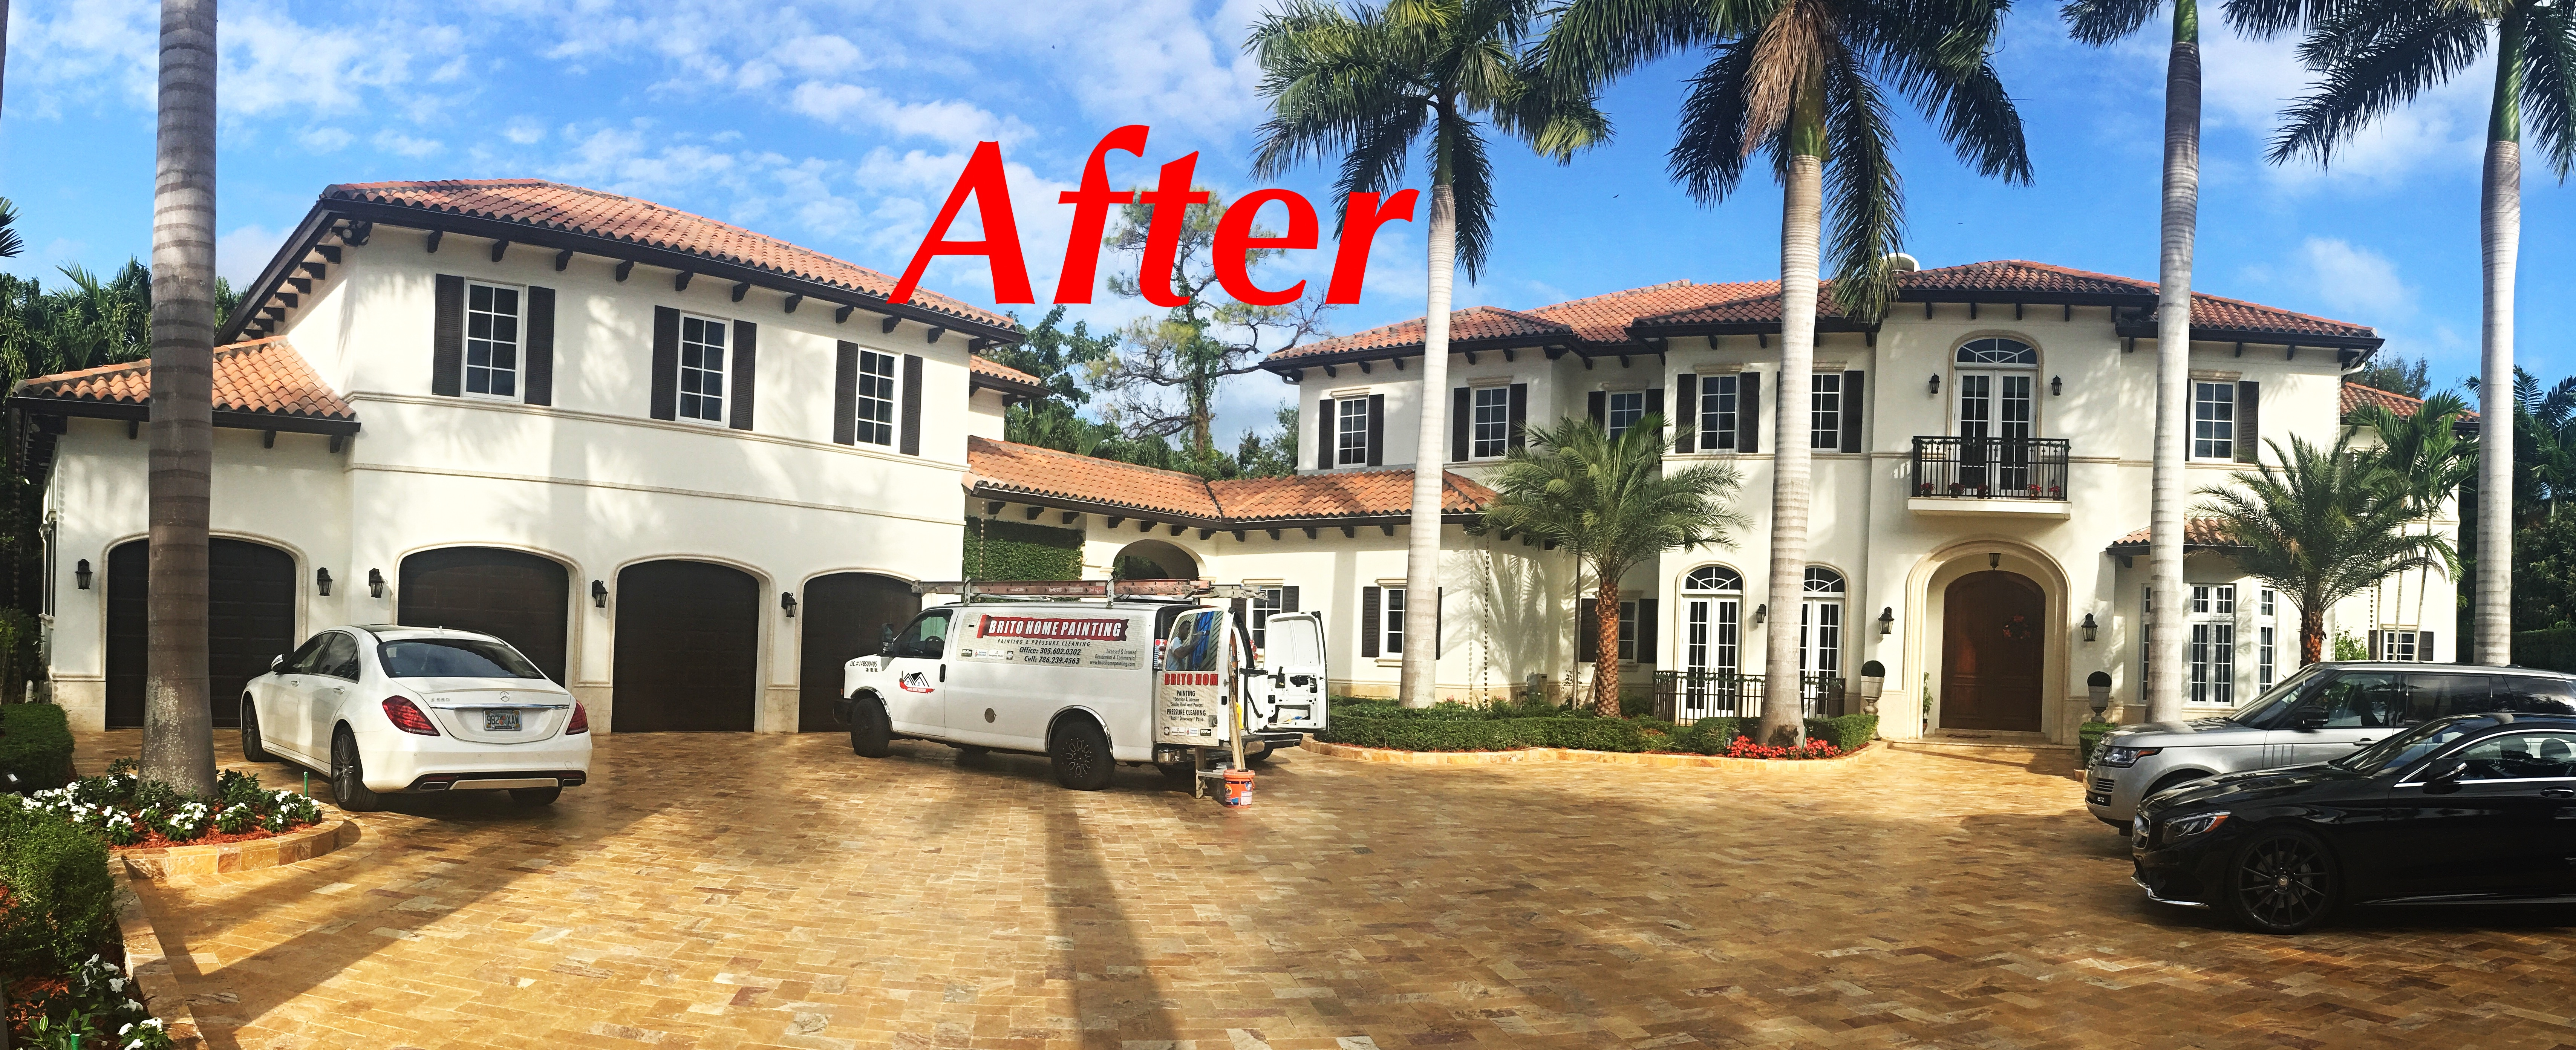 Brito home painting in miami fl 33165 for House painting miami